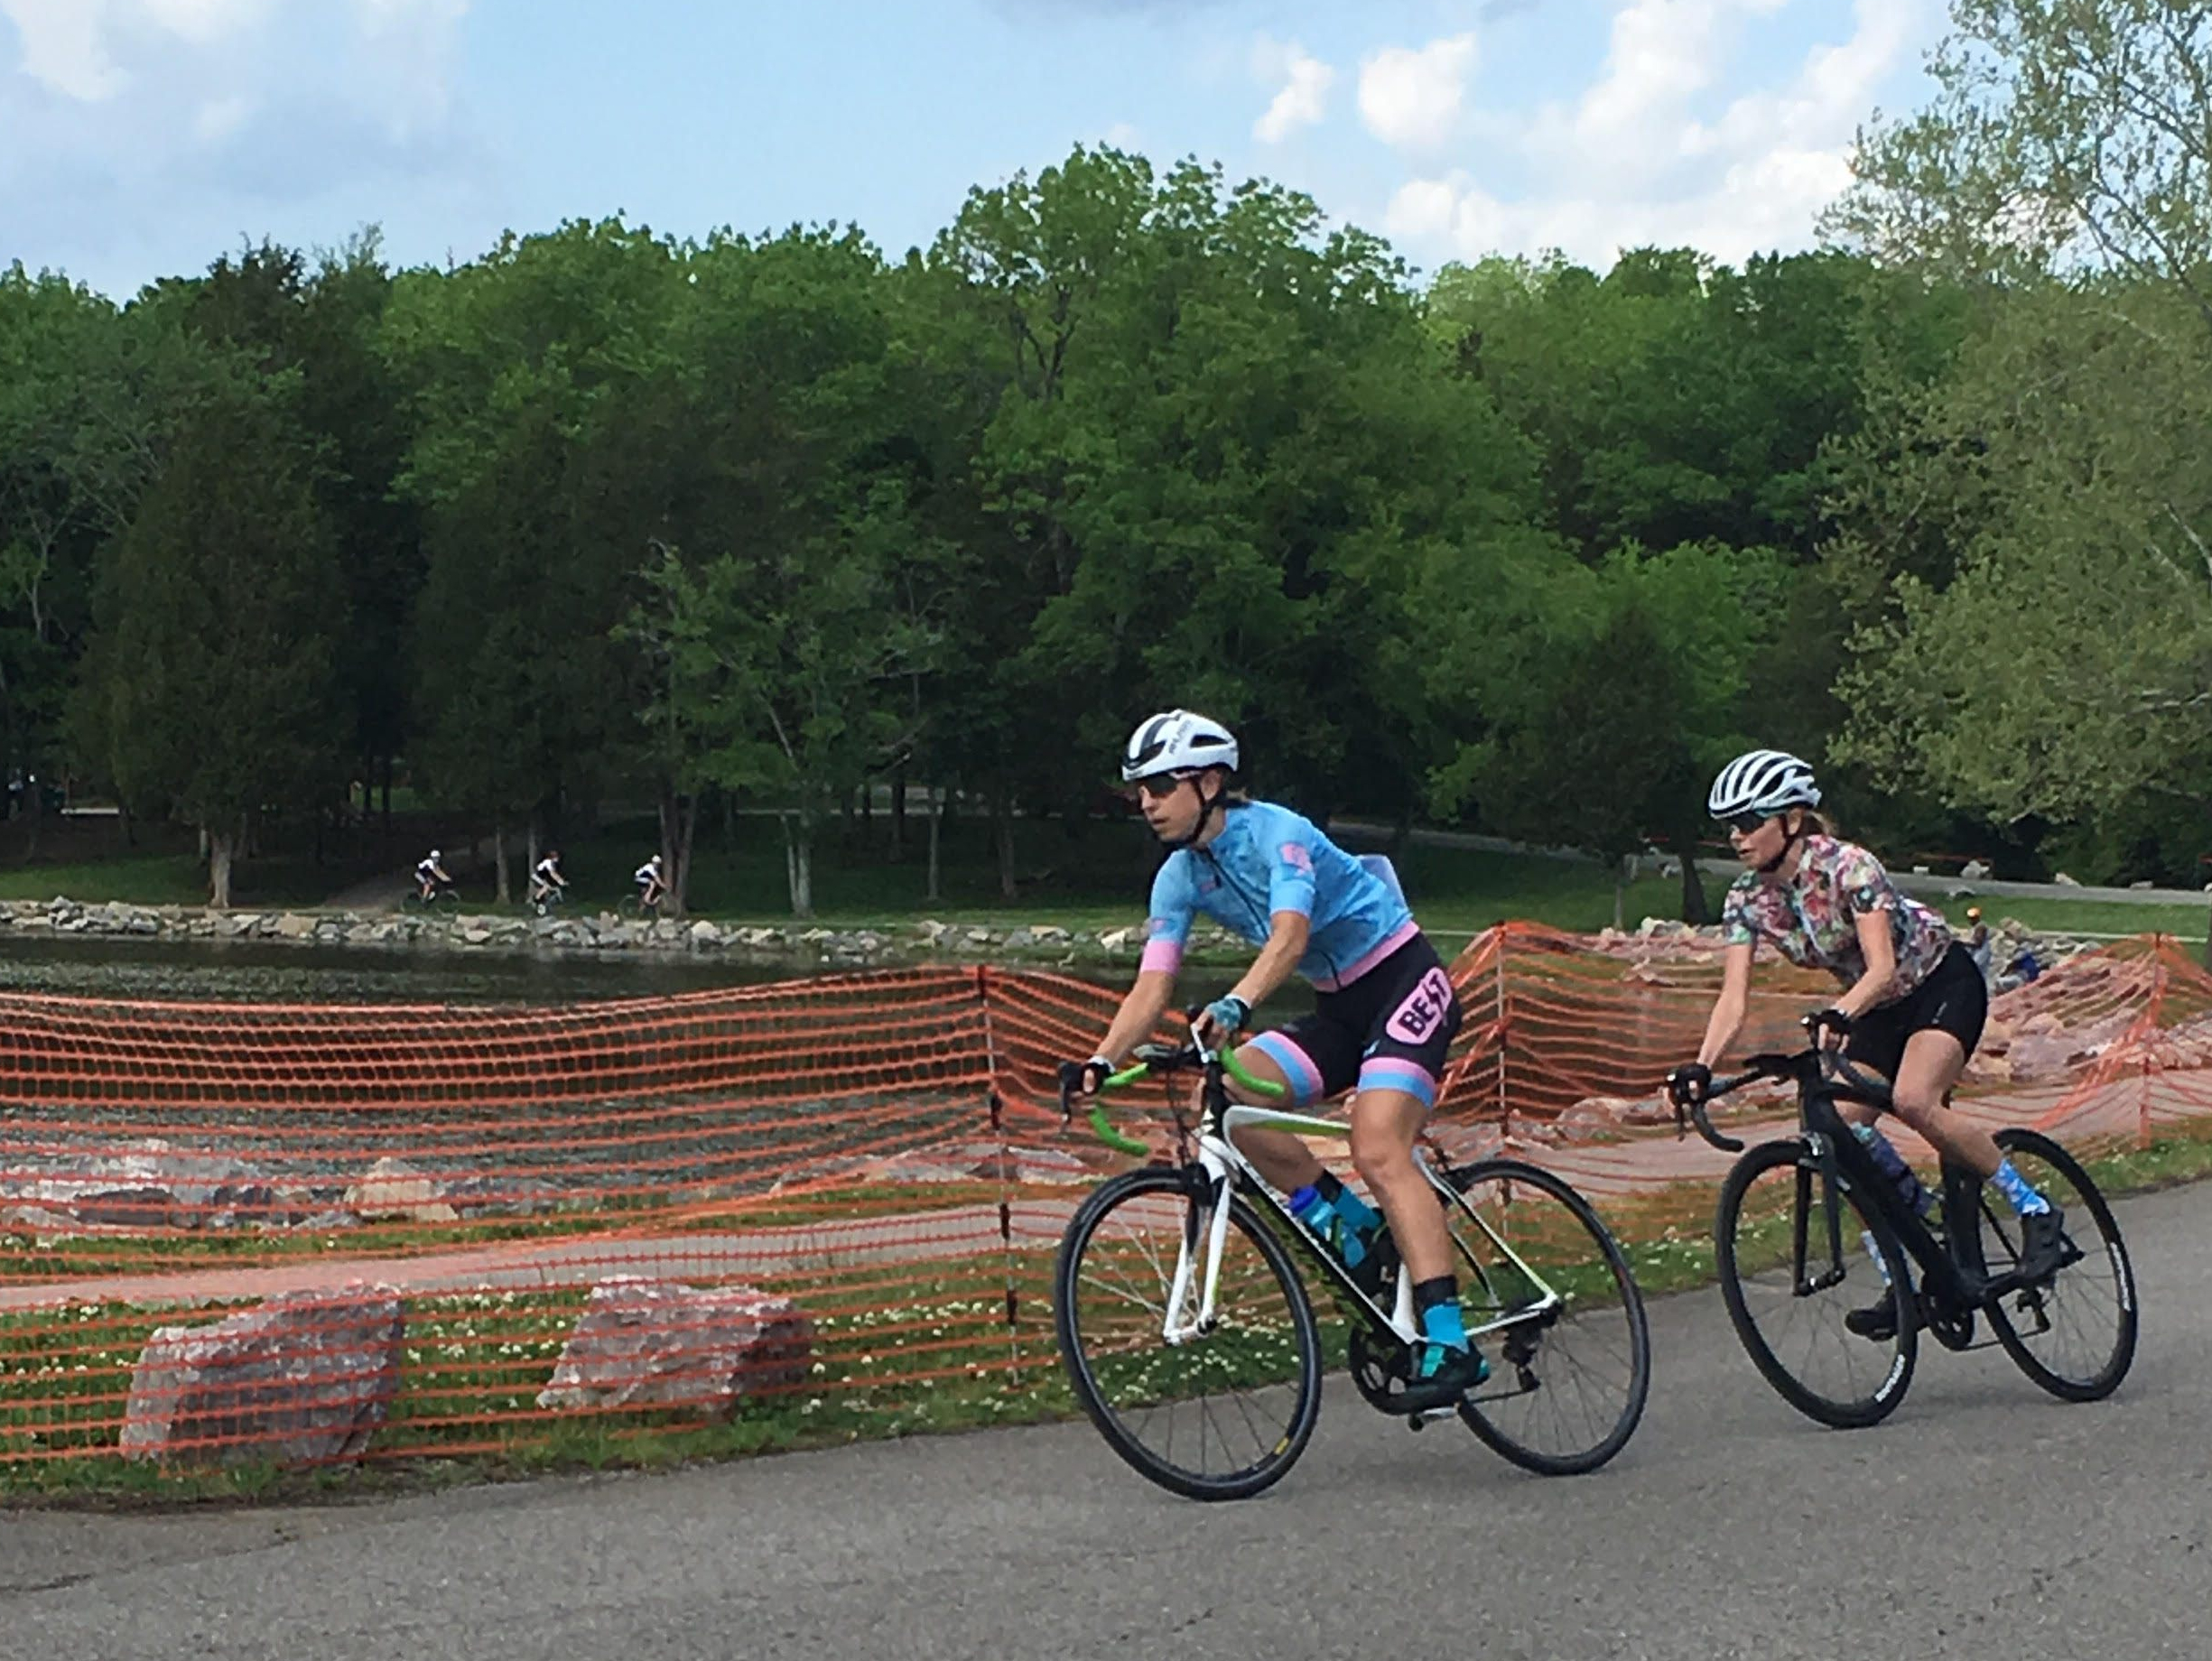 A Triathlete's Perspective on Bike Racing – TENNESSEE